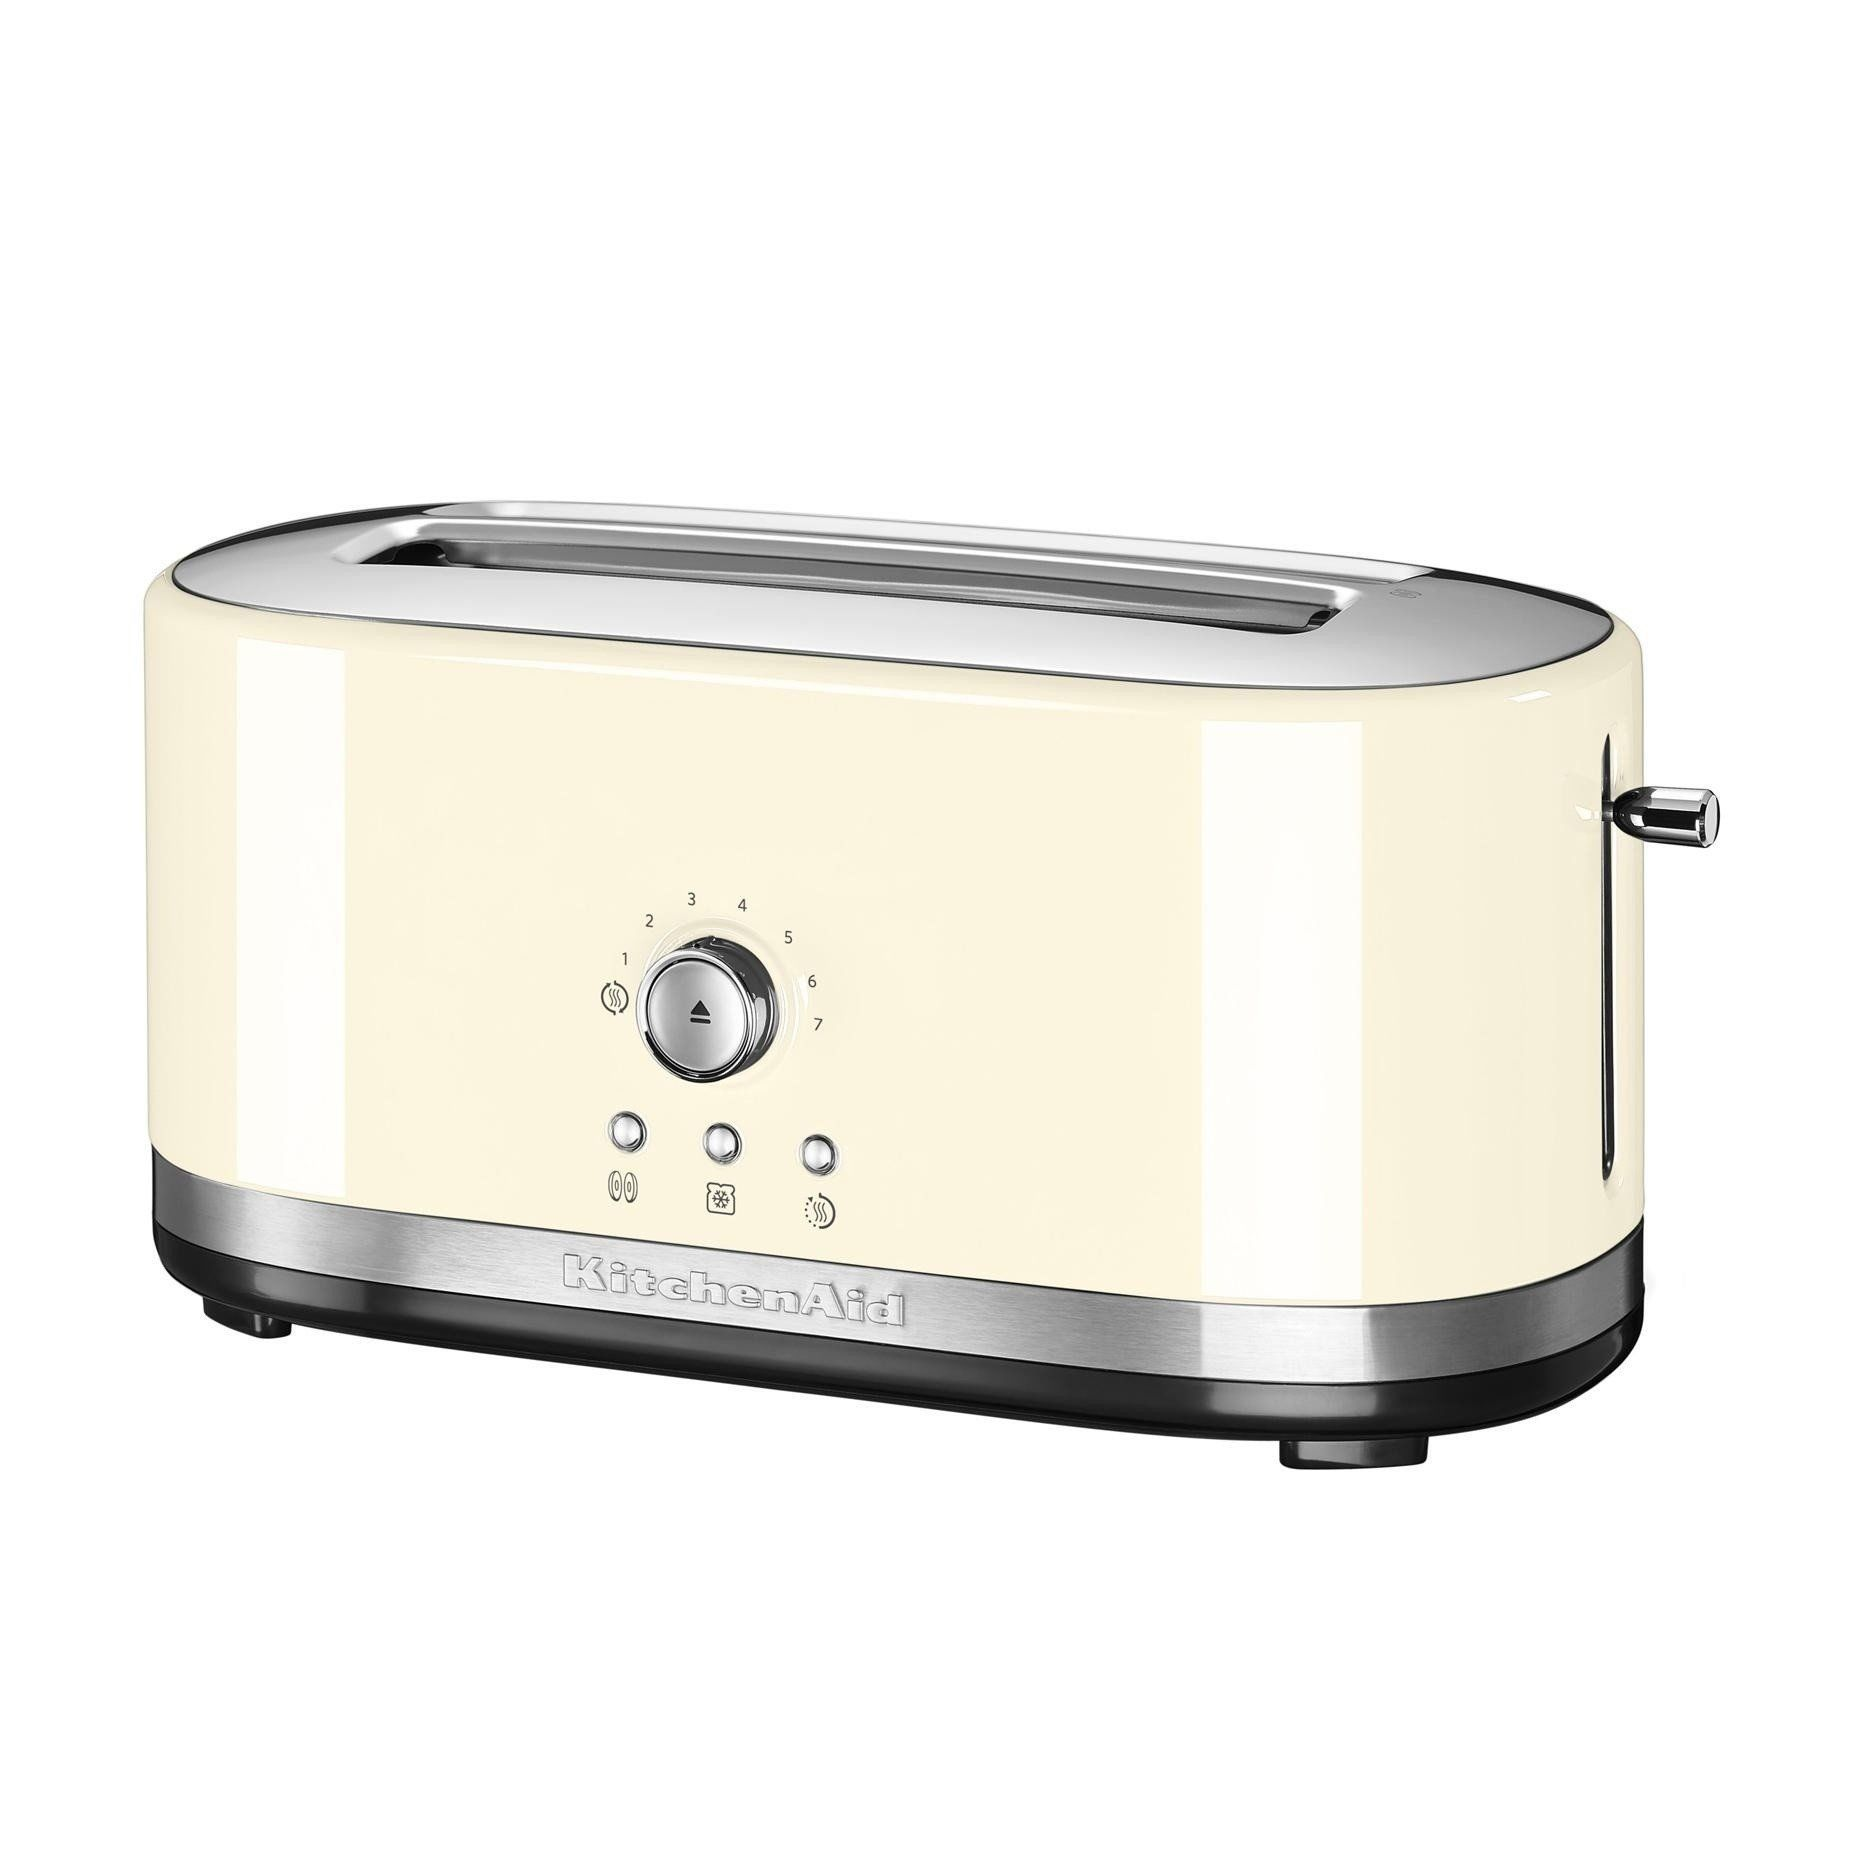 toast high toaster products electric of alessi with matrix style a review side seconds italian times